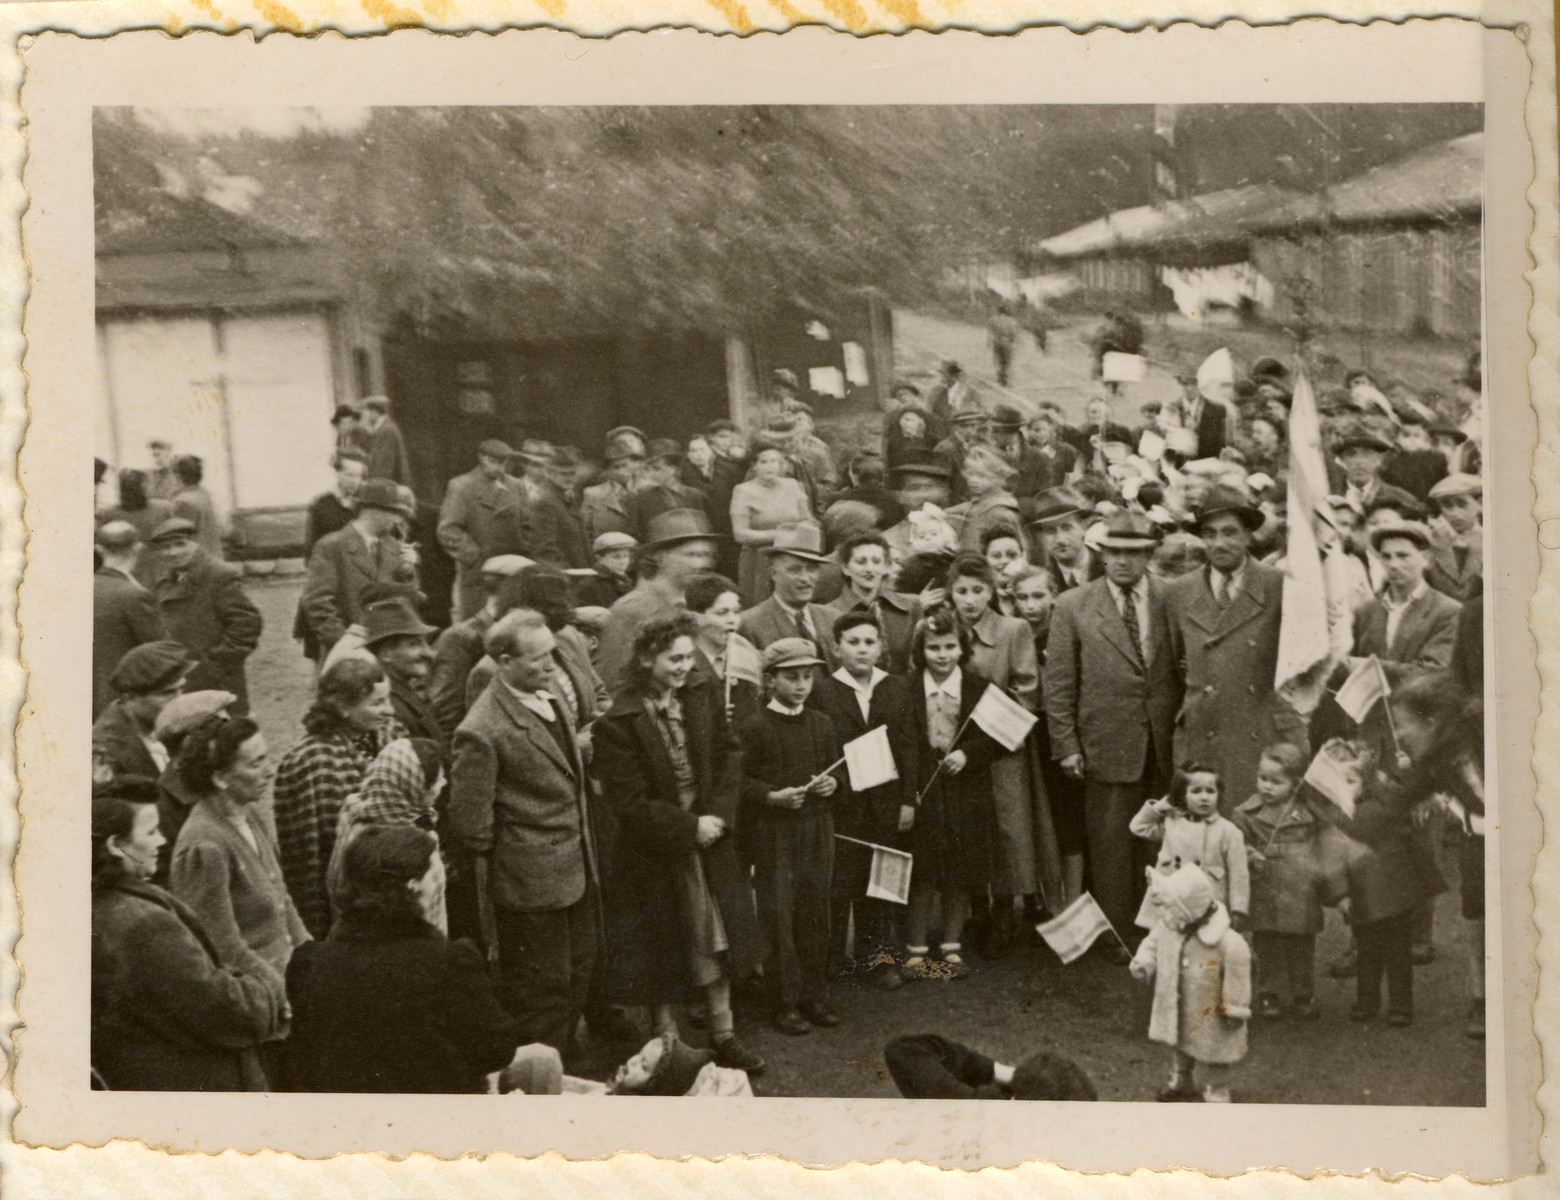 Jewish displaced persons in the Hallein camp celebrate Israel Independence Day.